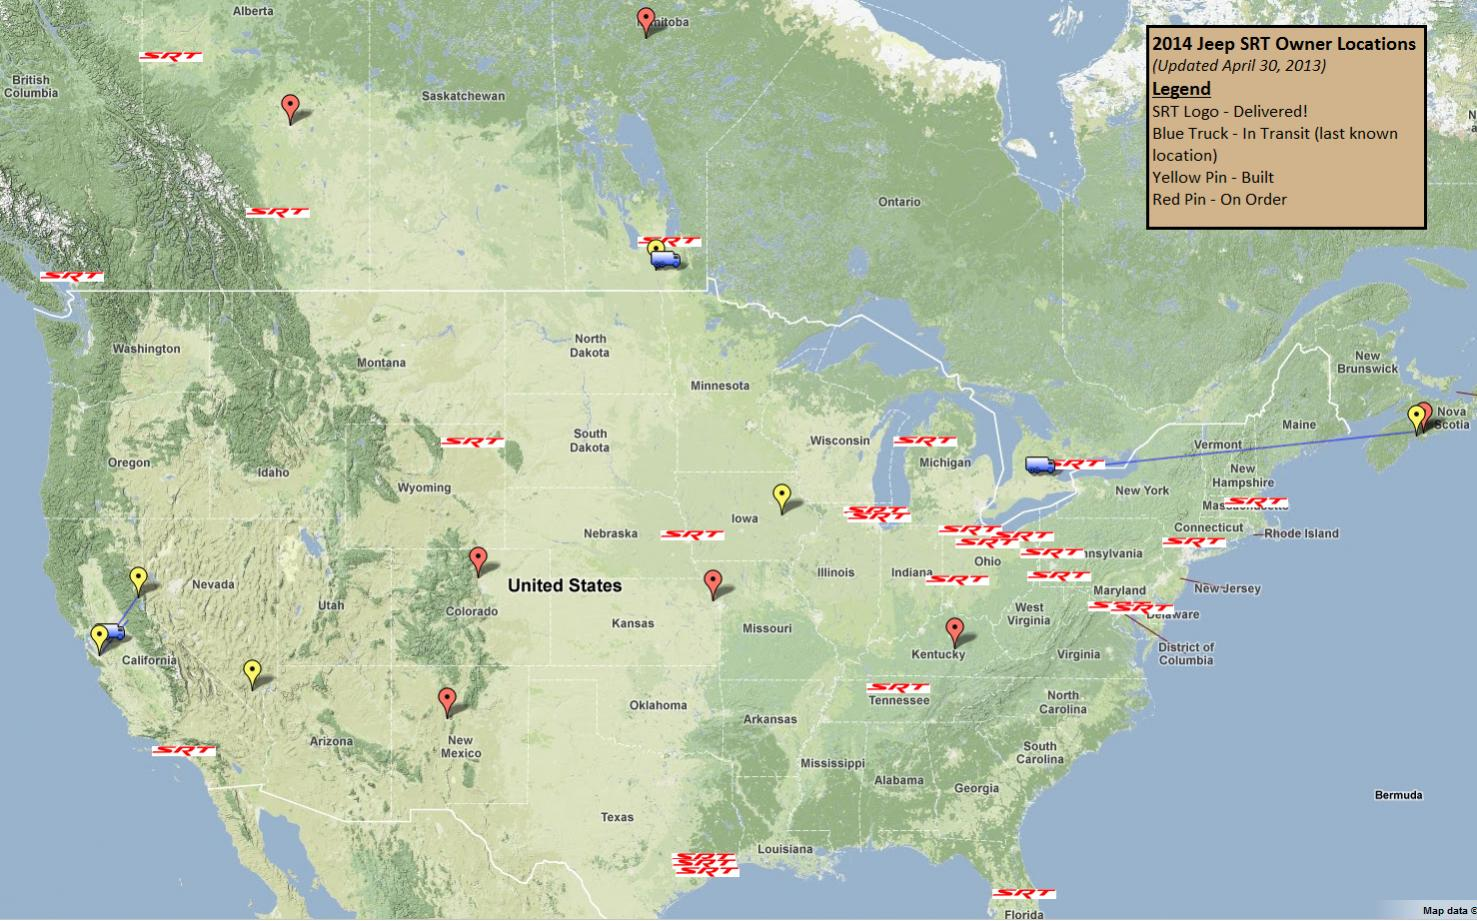 2014 SRT Owners Map 2013 04 30